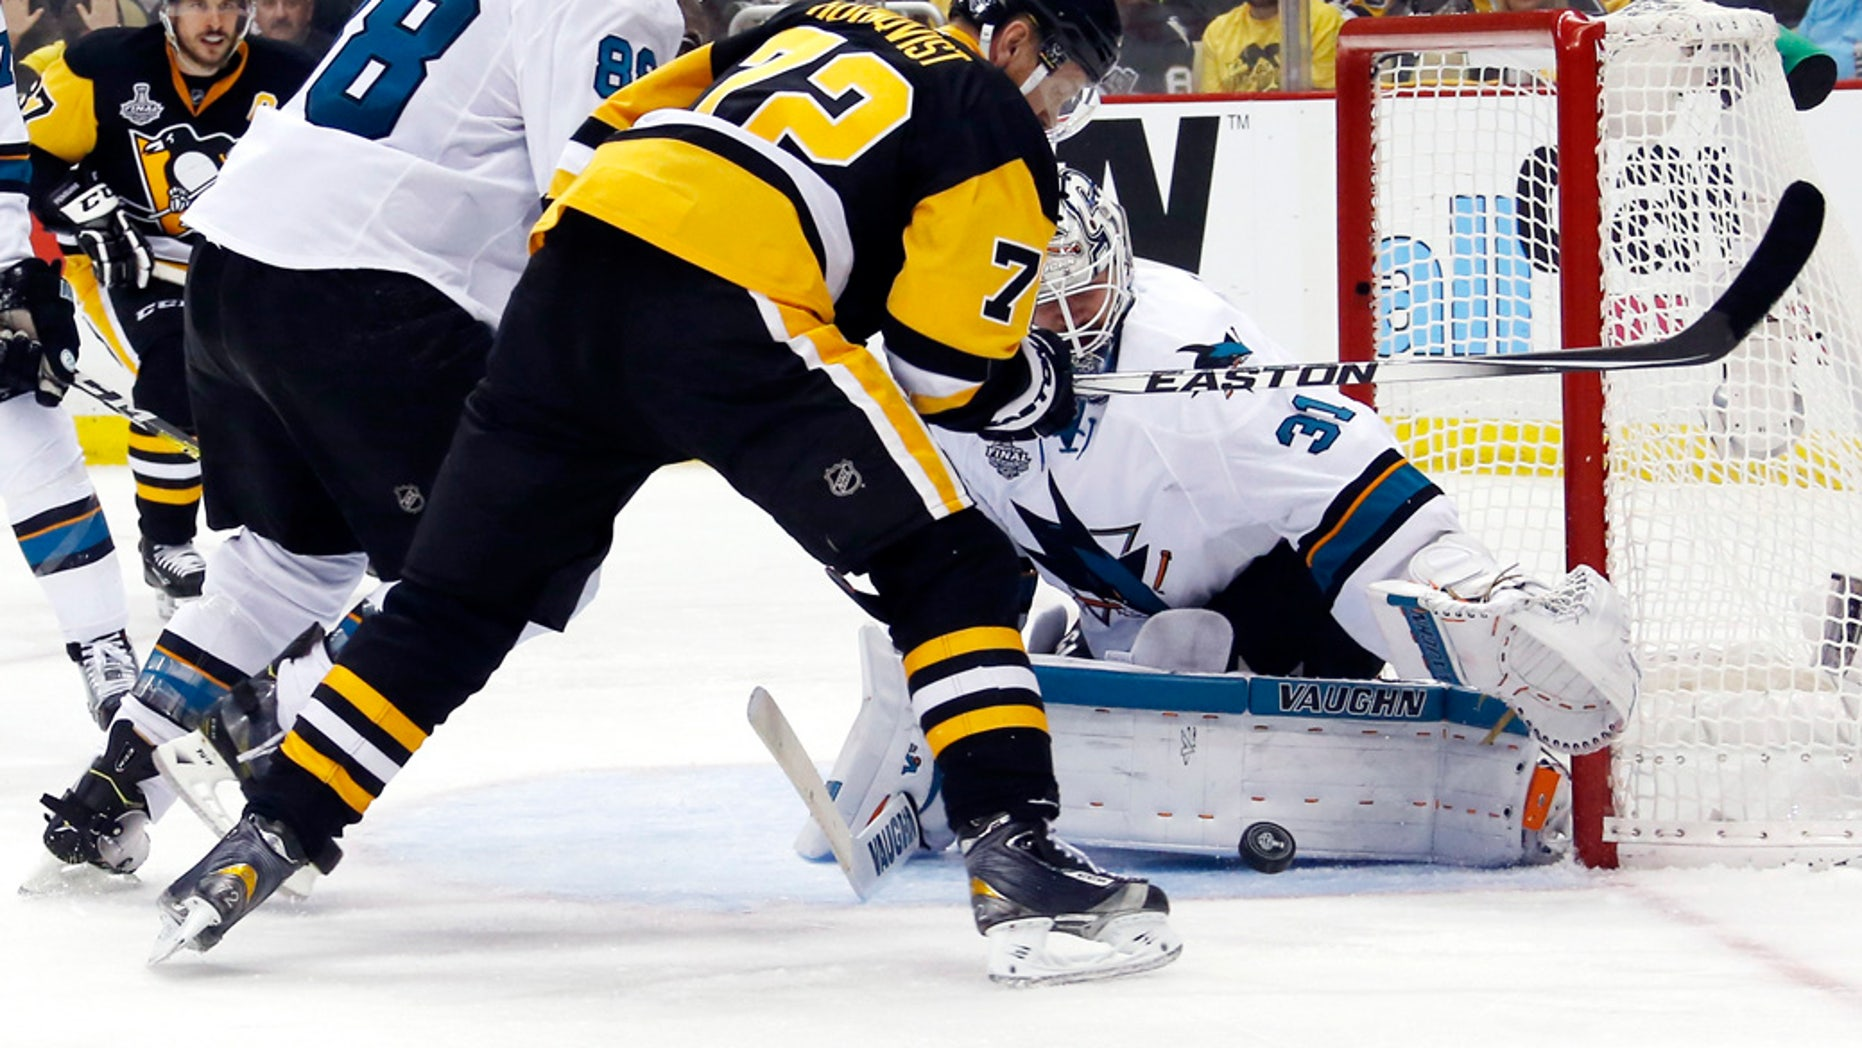 June 9, 2016: San Jose Sharks goalie Martin Jones (31) turns a shot away as Pittsburgh Penguins' Patric Hornqvist (72) and Sharks' Brent Burns (88) scramble in front of the net during the third period in Game 5 of the NHL Stanley Cup Final